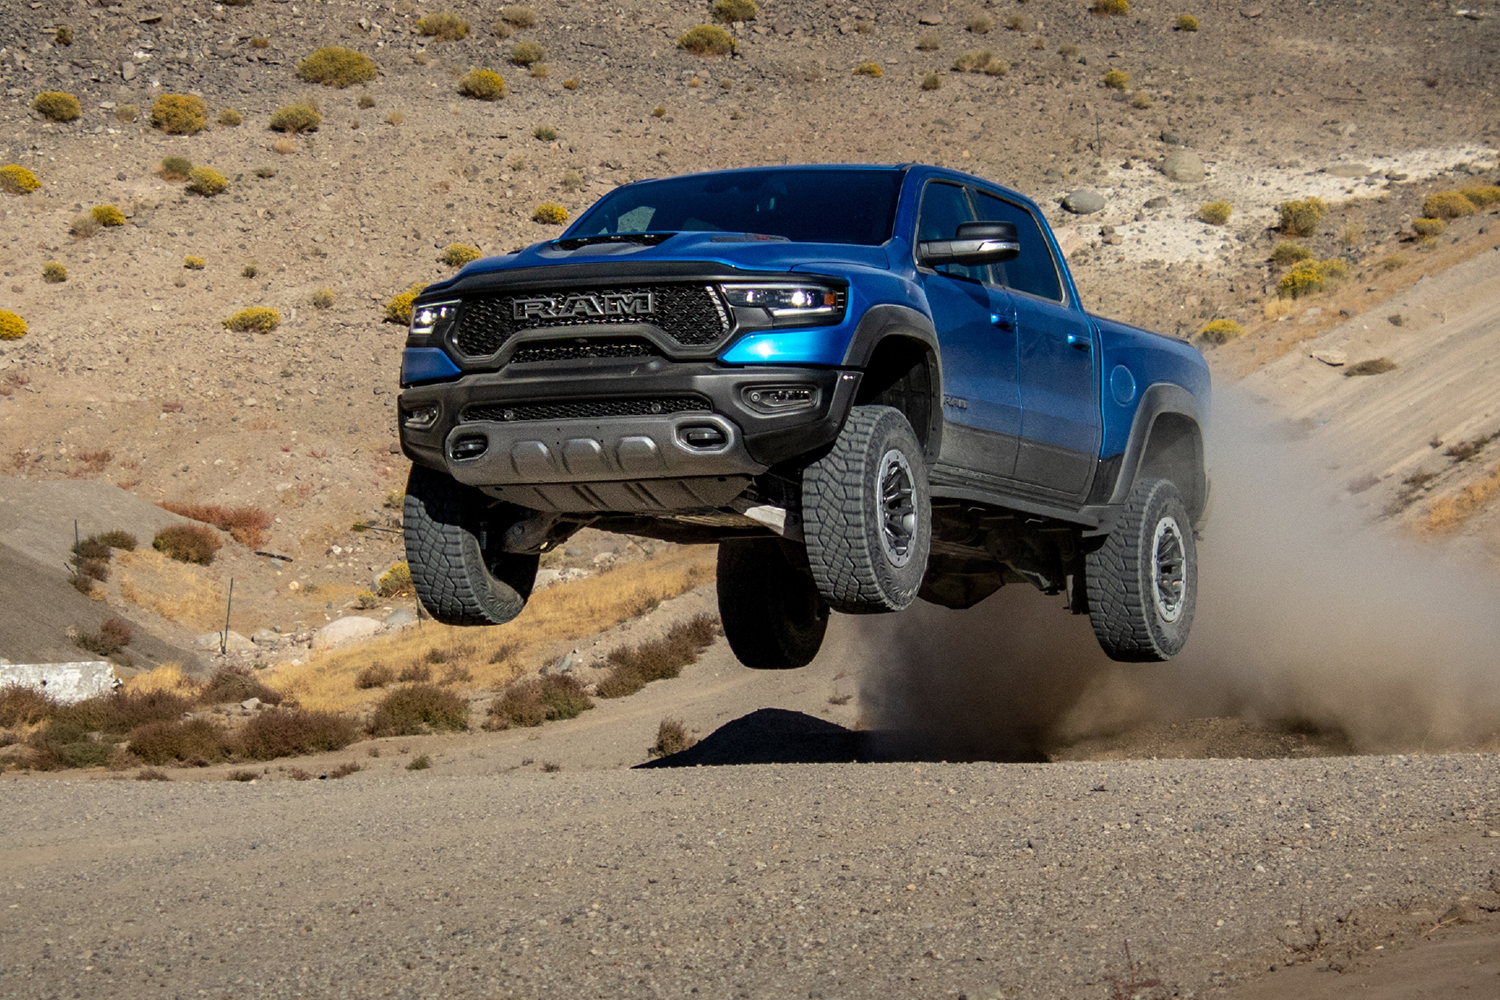 A blue 2021 Ram 1500 TRX pickup truck gets some airtime